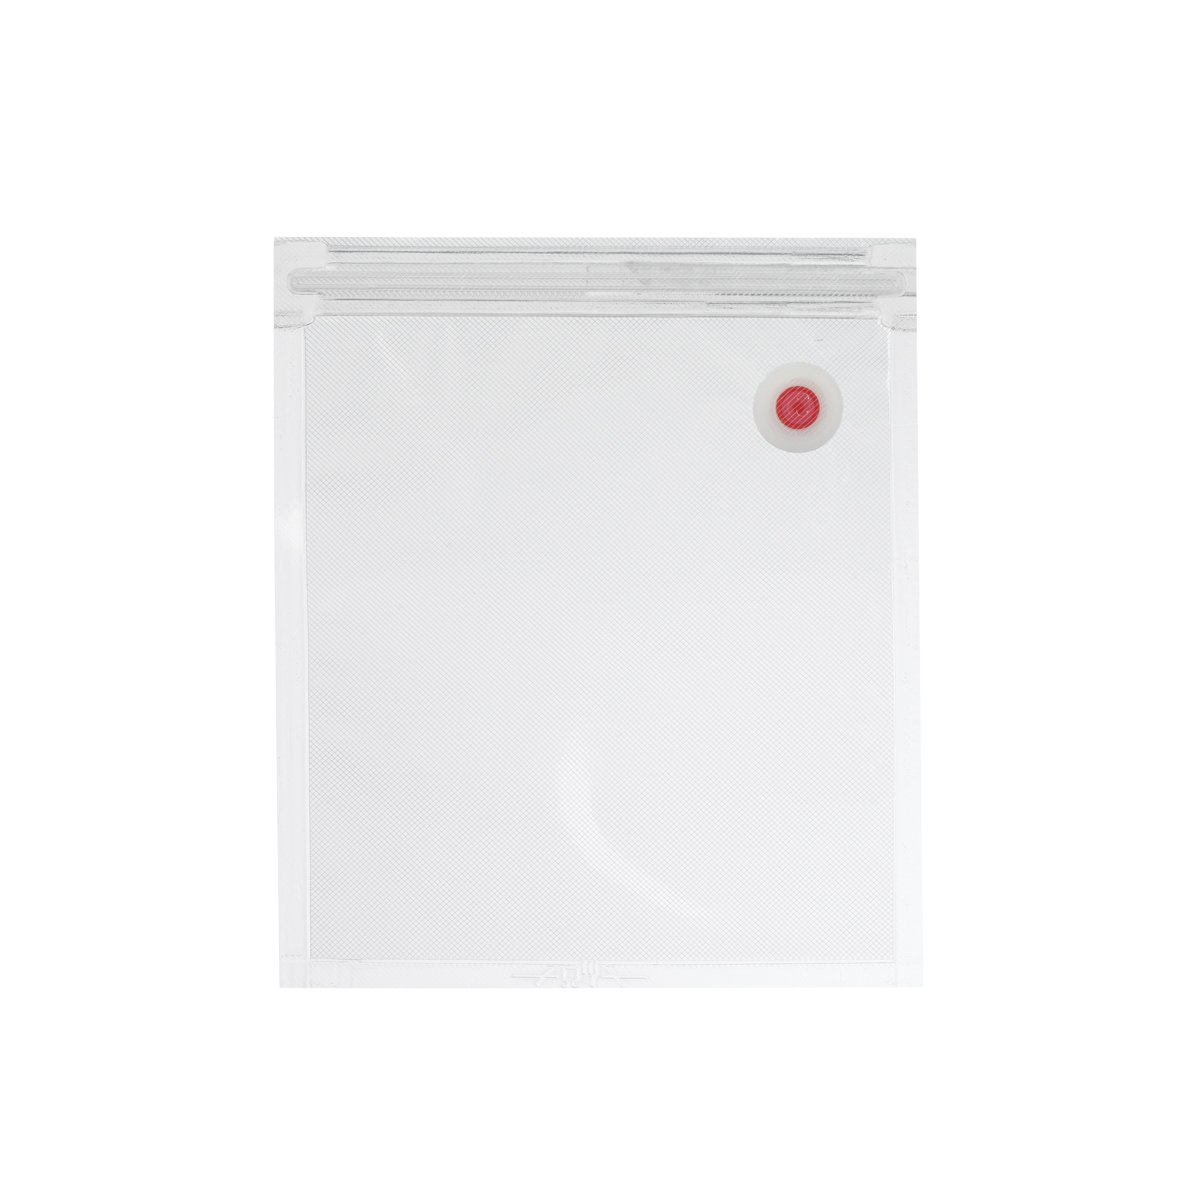 Waring Commercial 50 Count Vacuum seal bag with Valve, 1-Quart, Clear